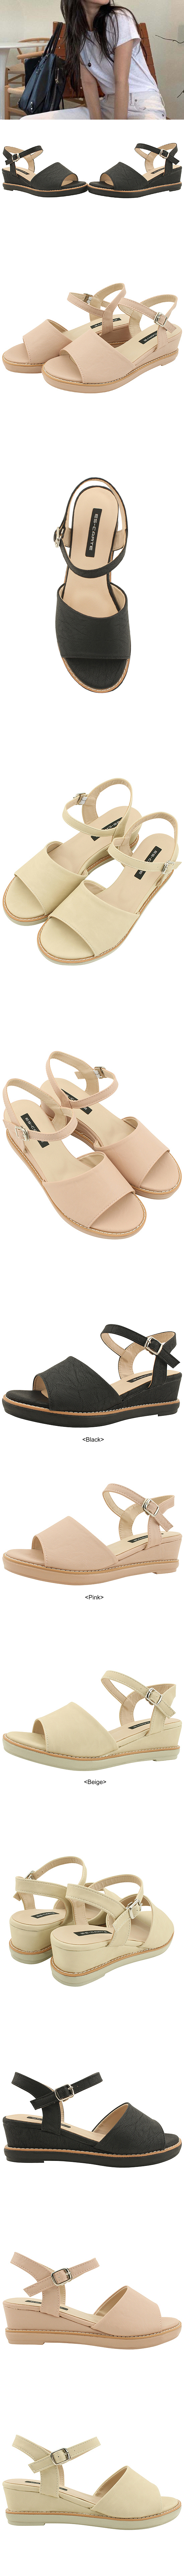 Basic Wedge Heel Mary Jane Sandals Black